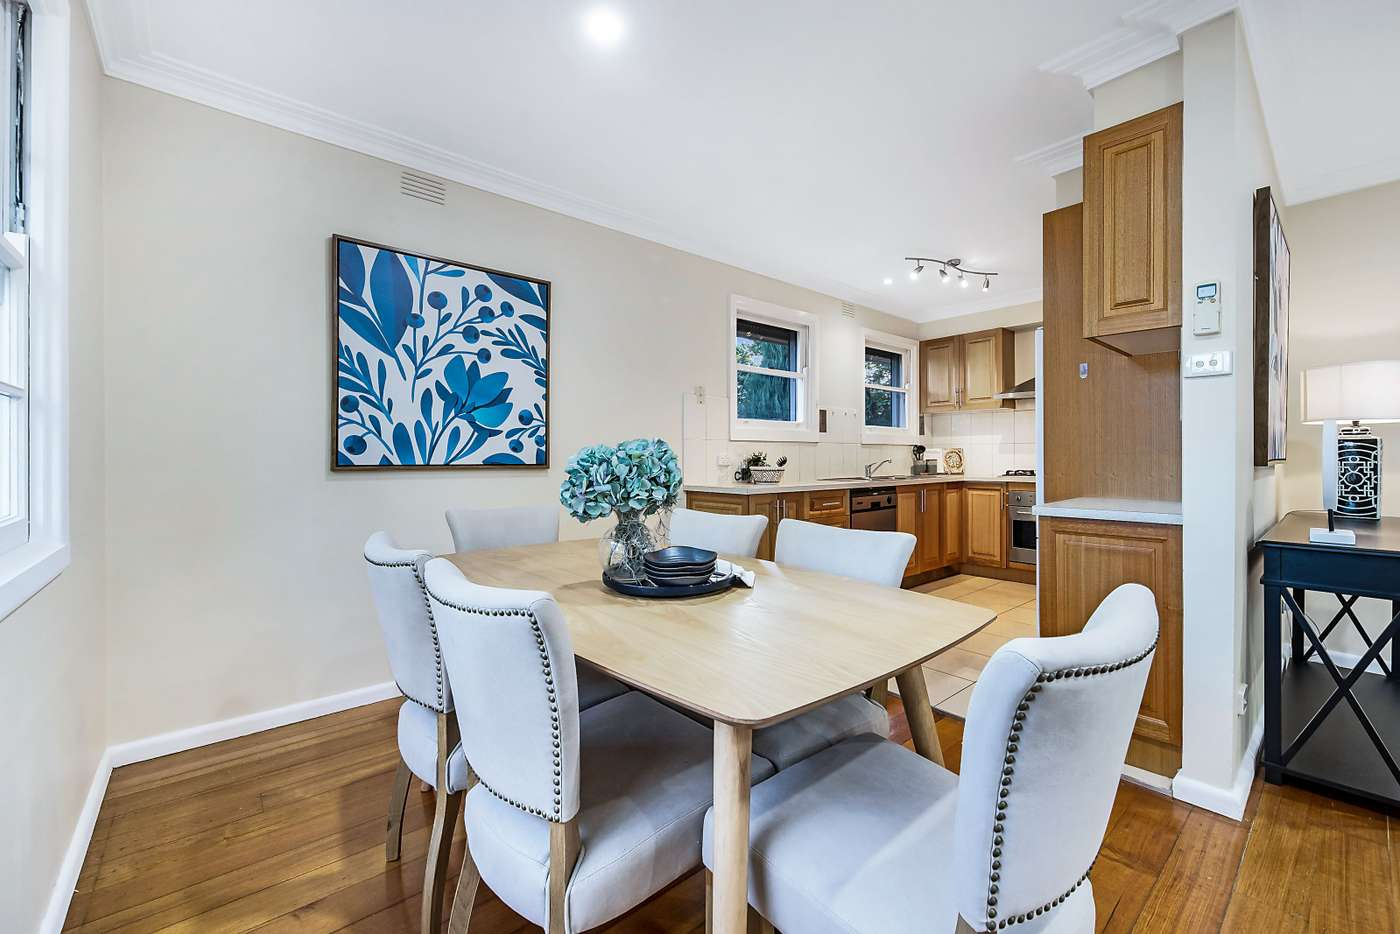 Fifth view of Homely house listing, 10A Caledonia Crescent, Mulgrave VIC 3170